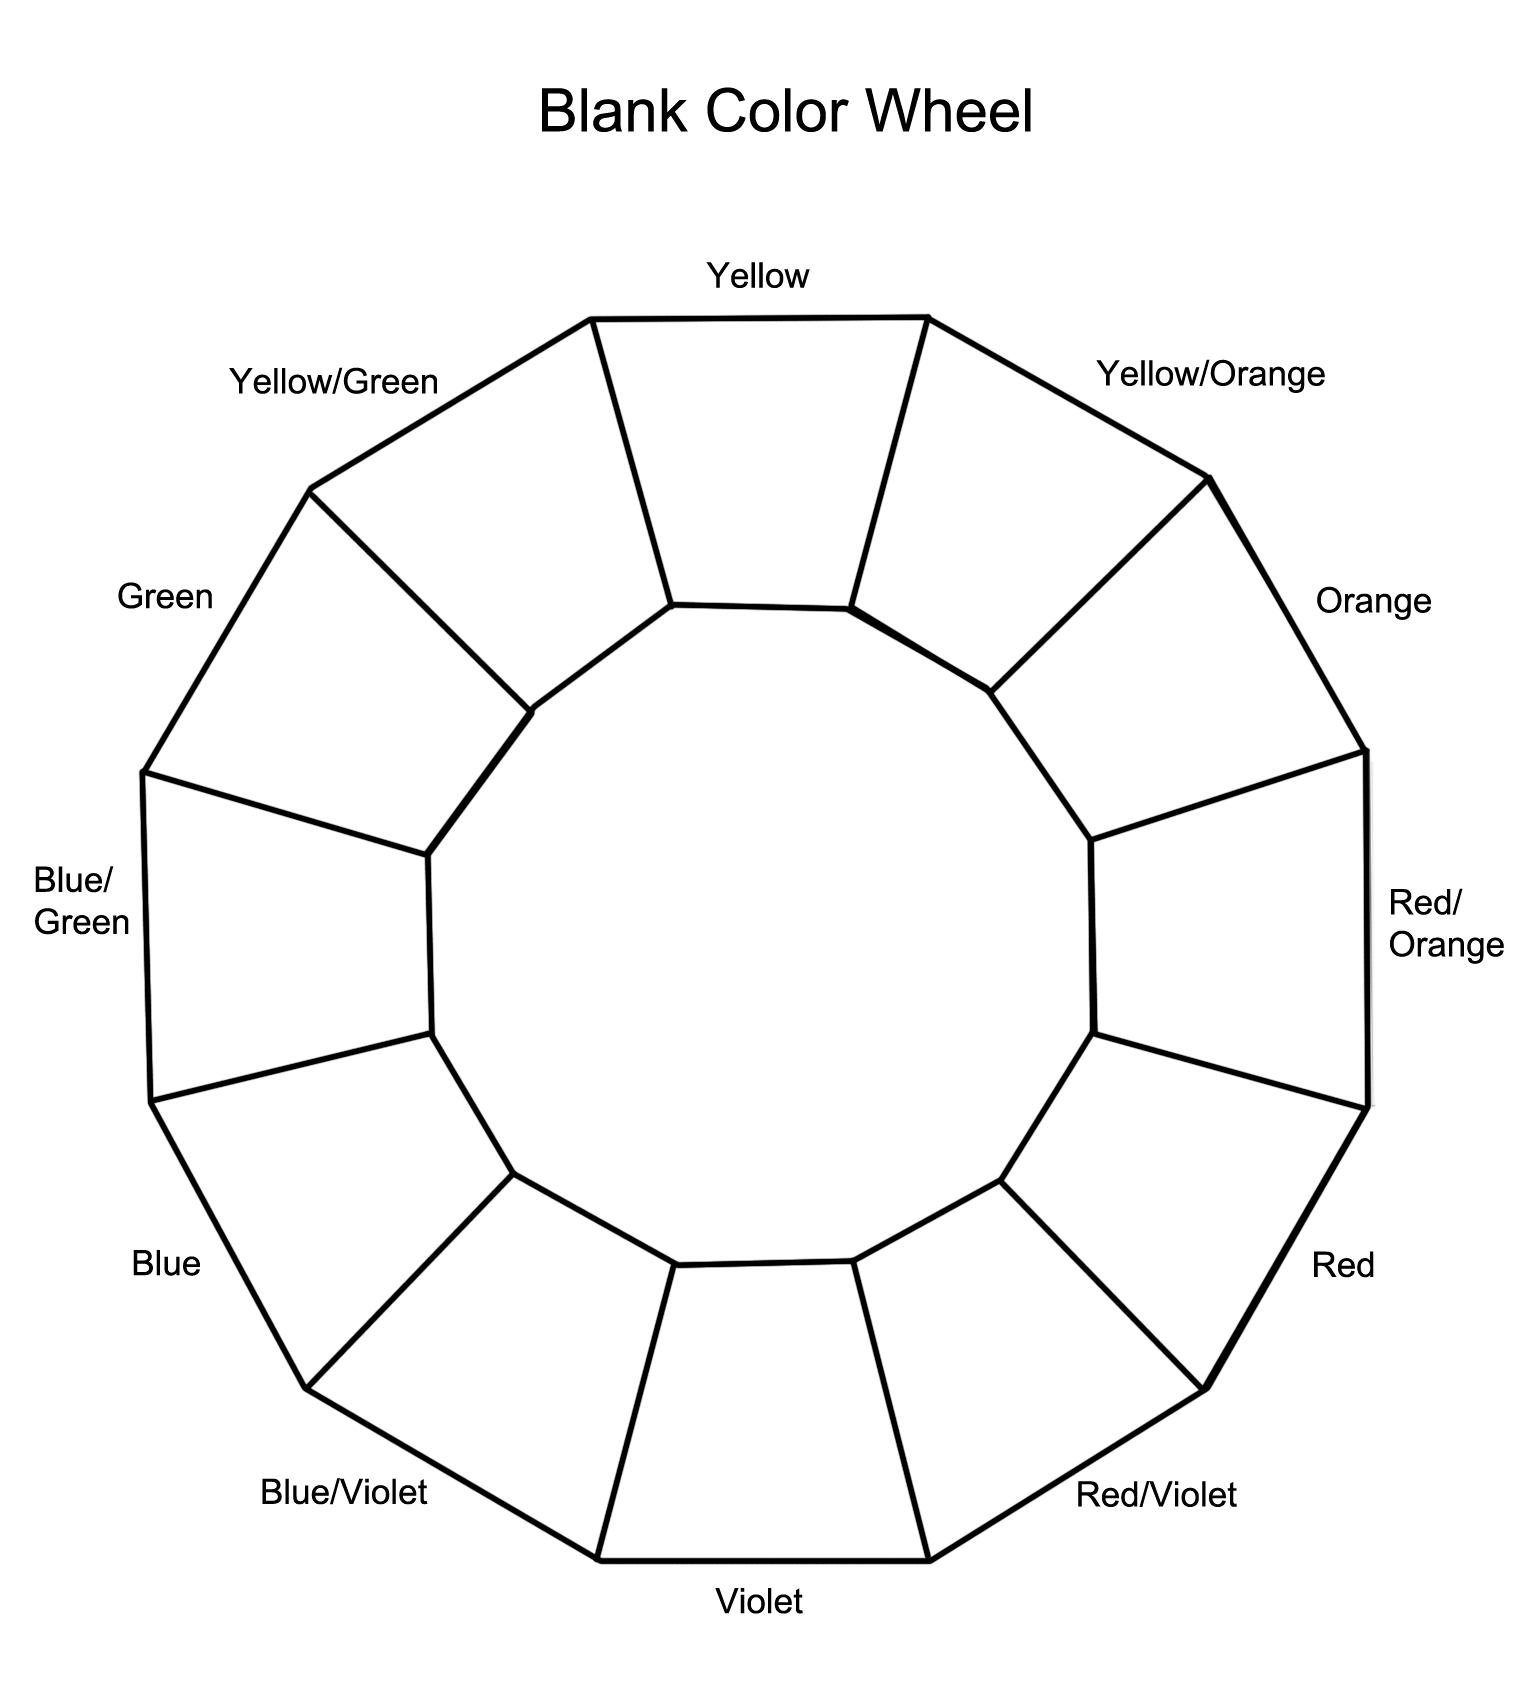 Color theory online games - 12 Section Colour Wheel Free Pictures